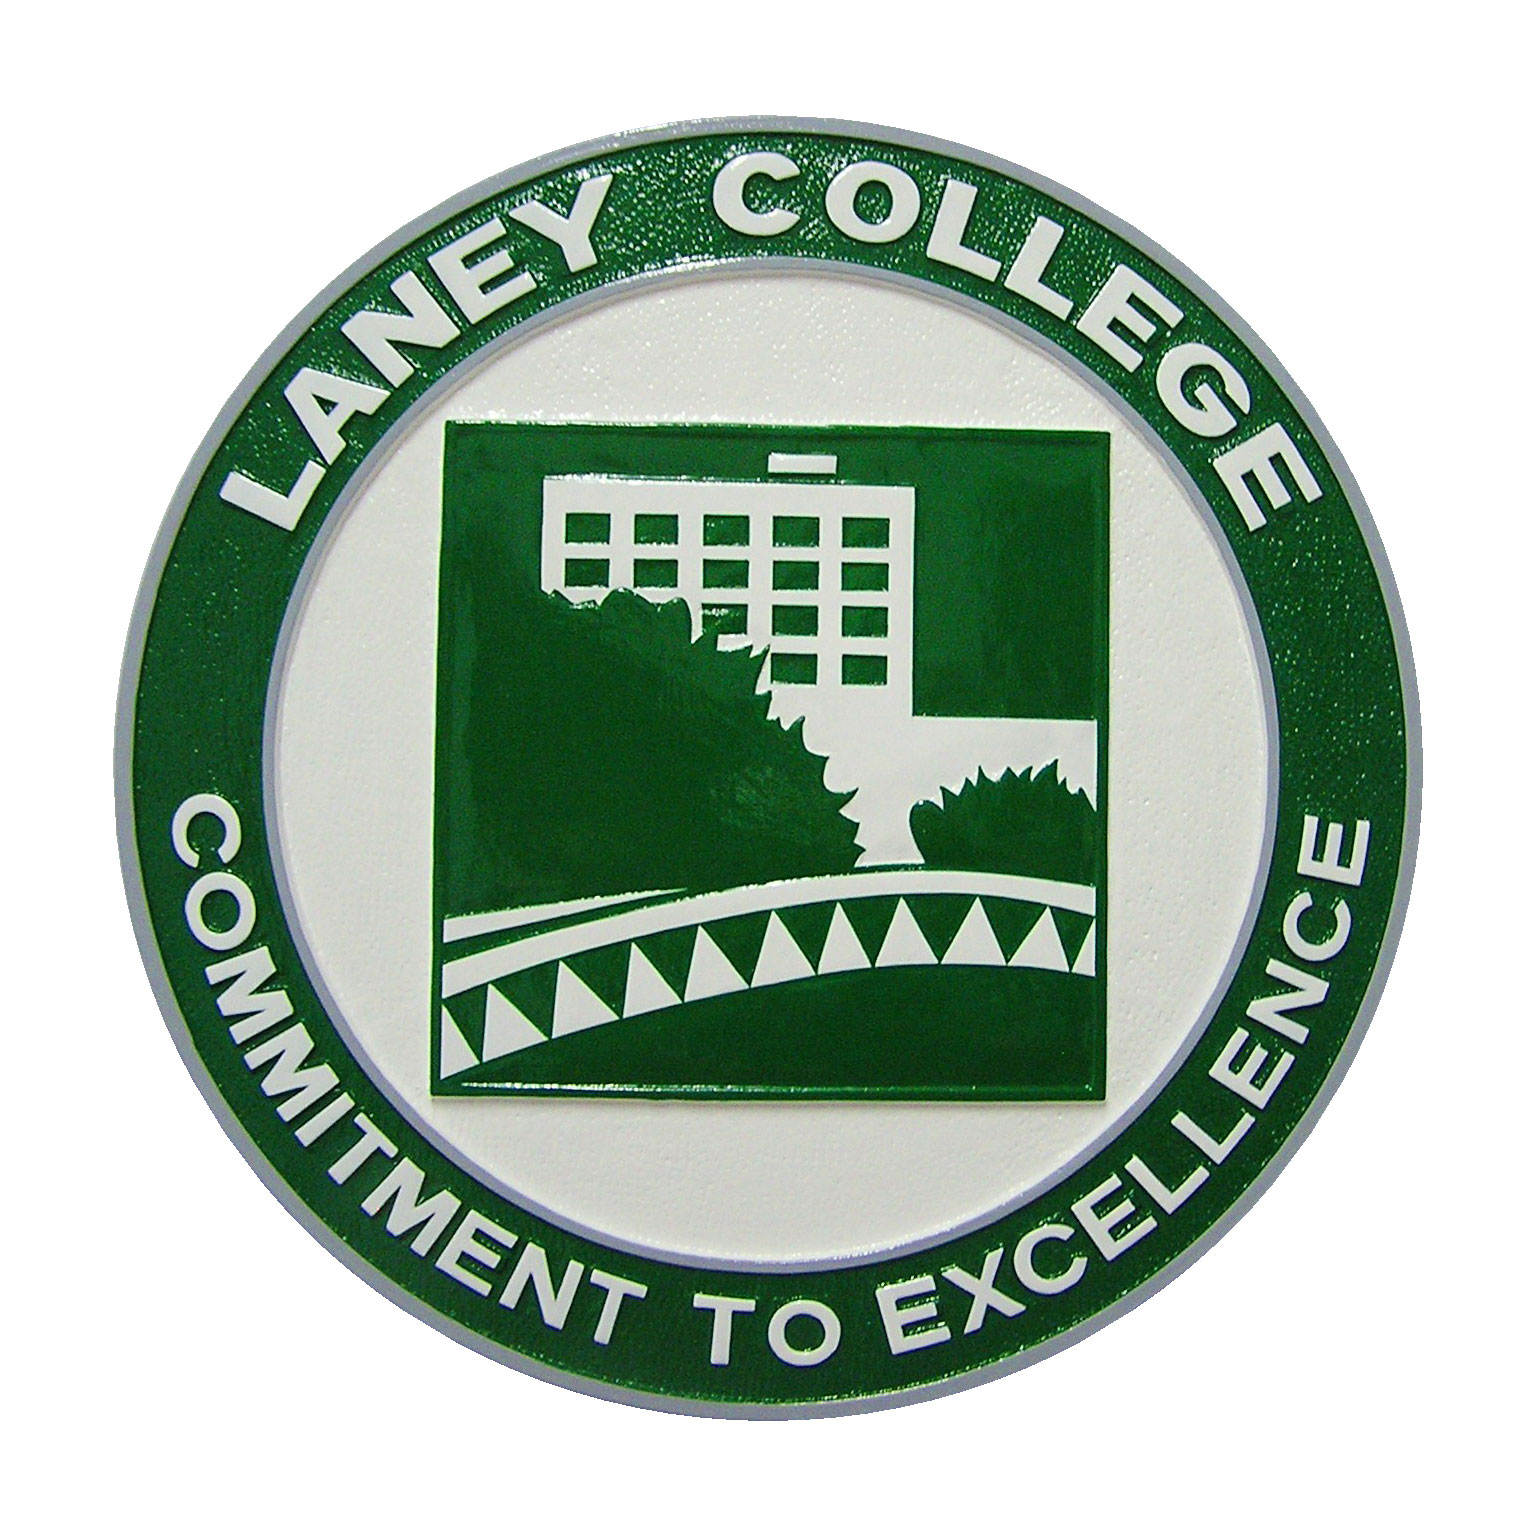 Laney College Seal